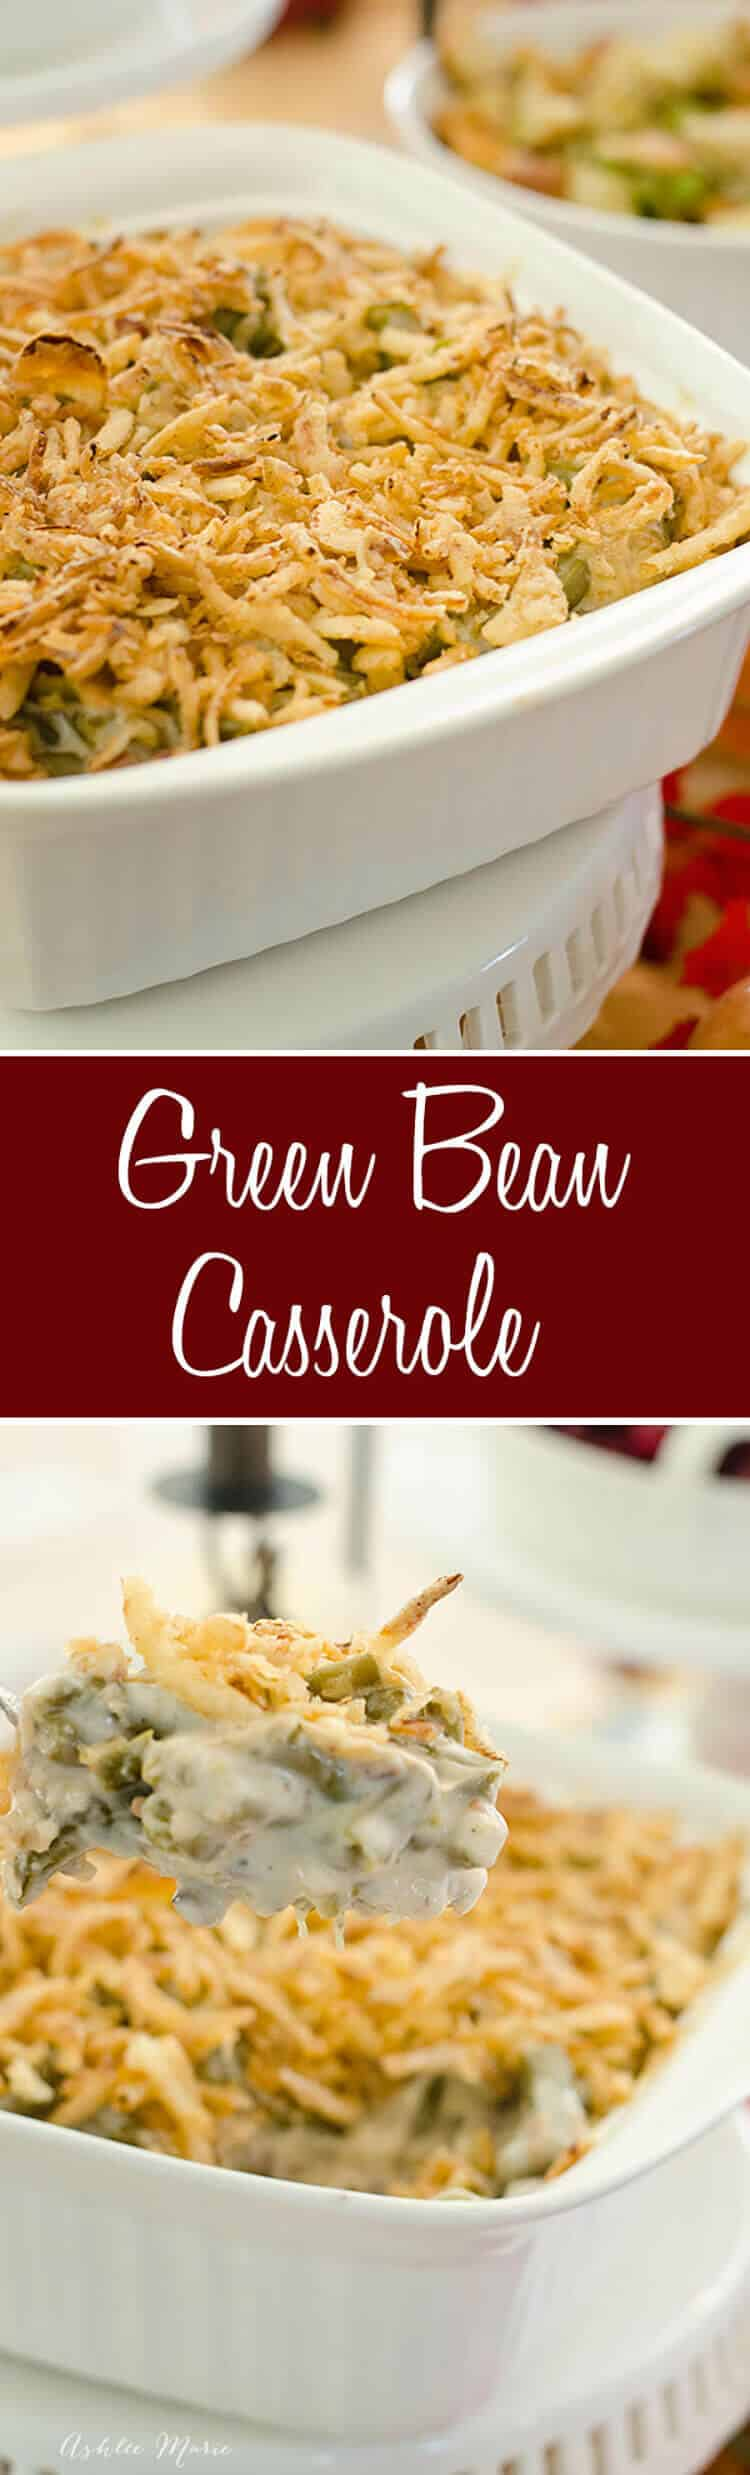 A classic and delicious thanksgiving dish, this green bean casserole is oh-so-delicious